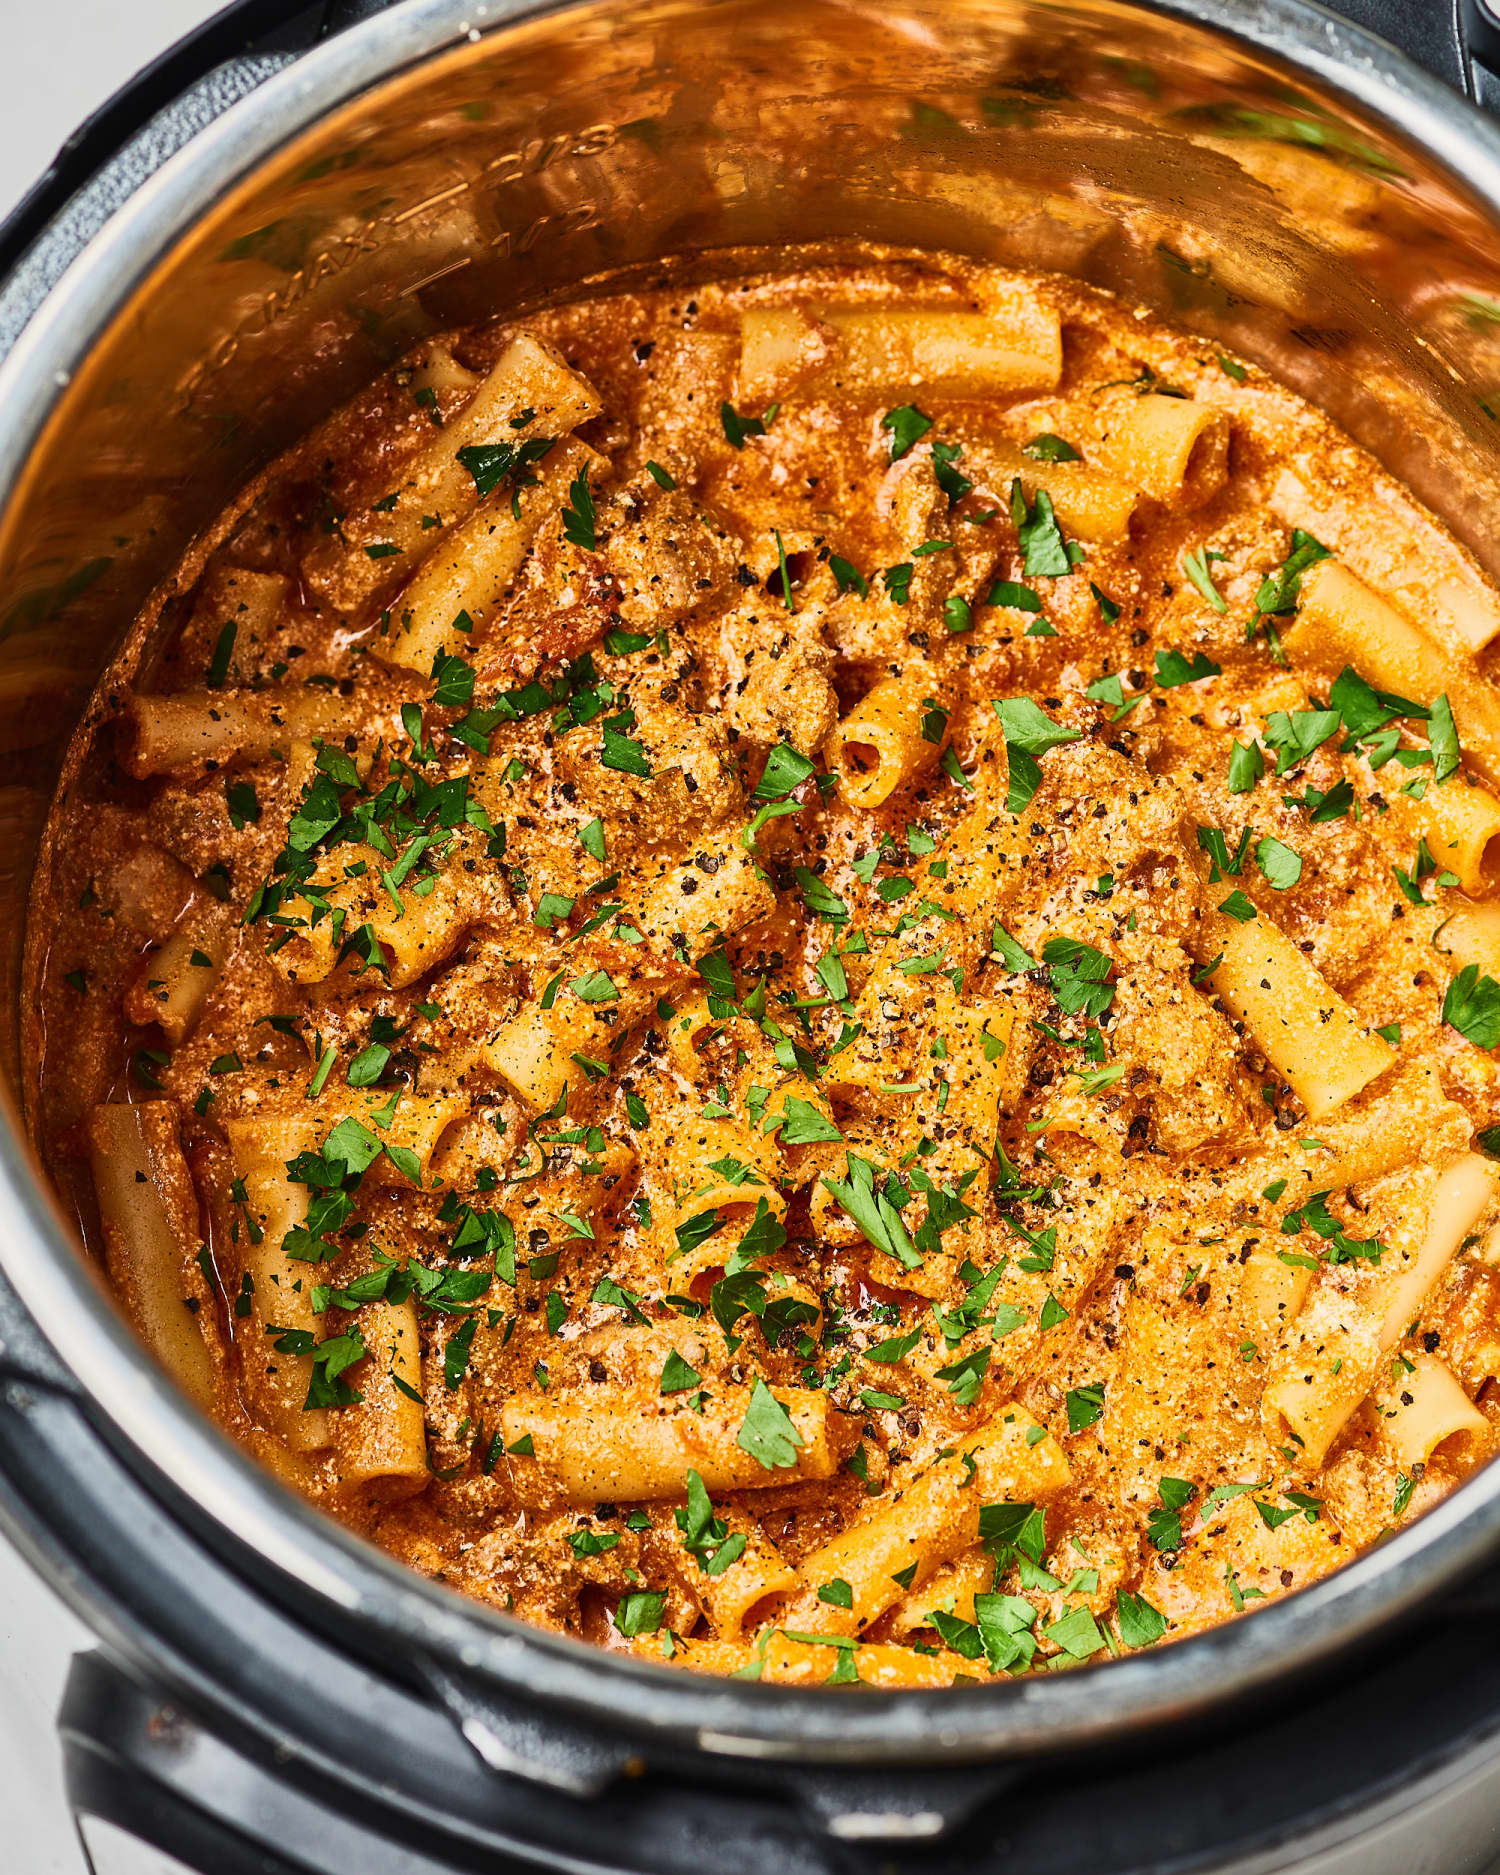 10 Ridiculously-Delicious Pasta Dinners to Make in Your Instant Pot